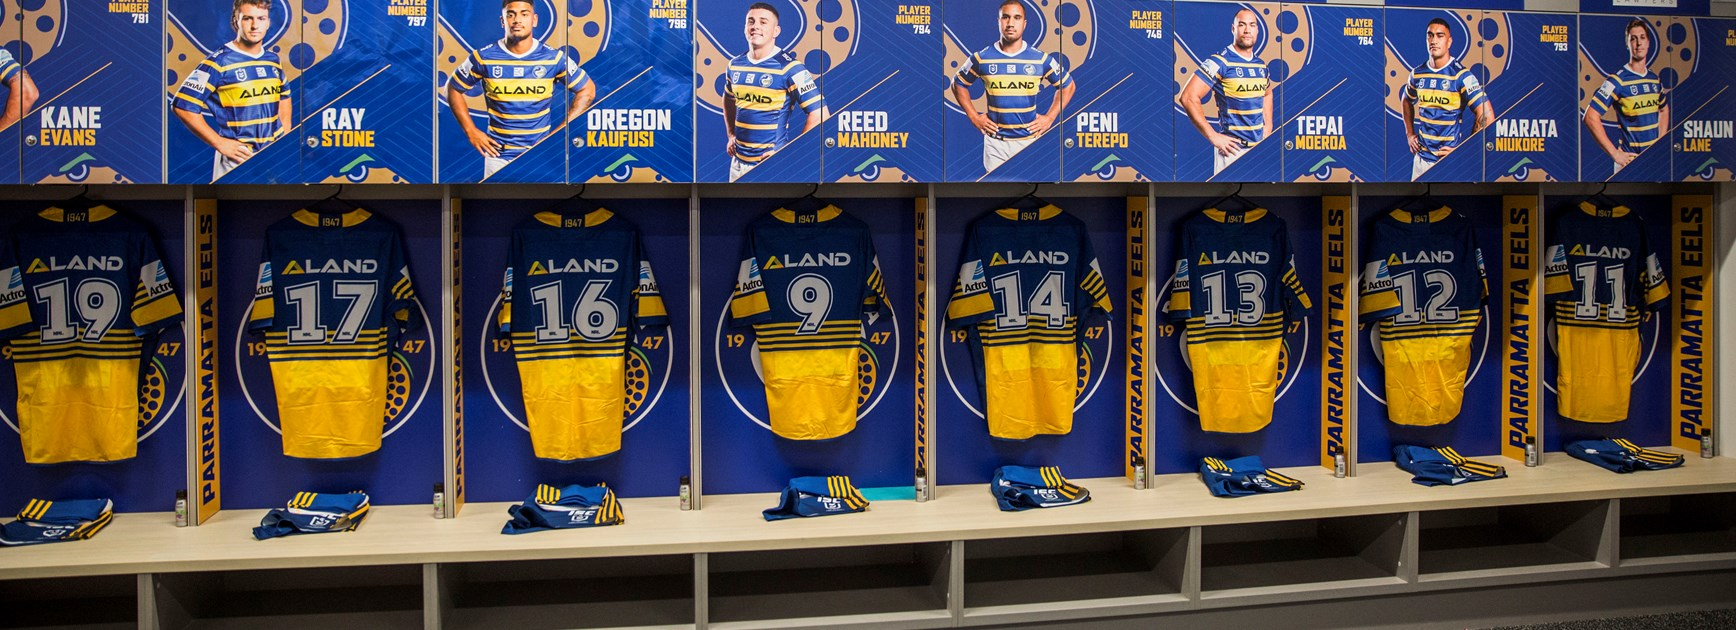 LATE MAIL | Eels v Wests Tigers, Round Six